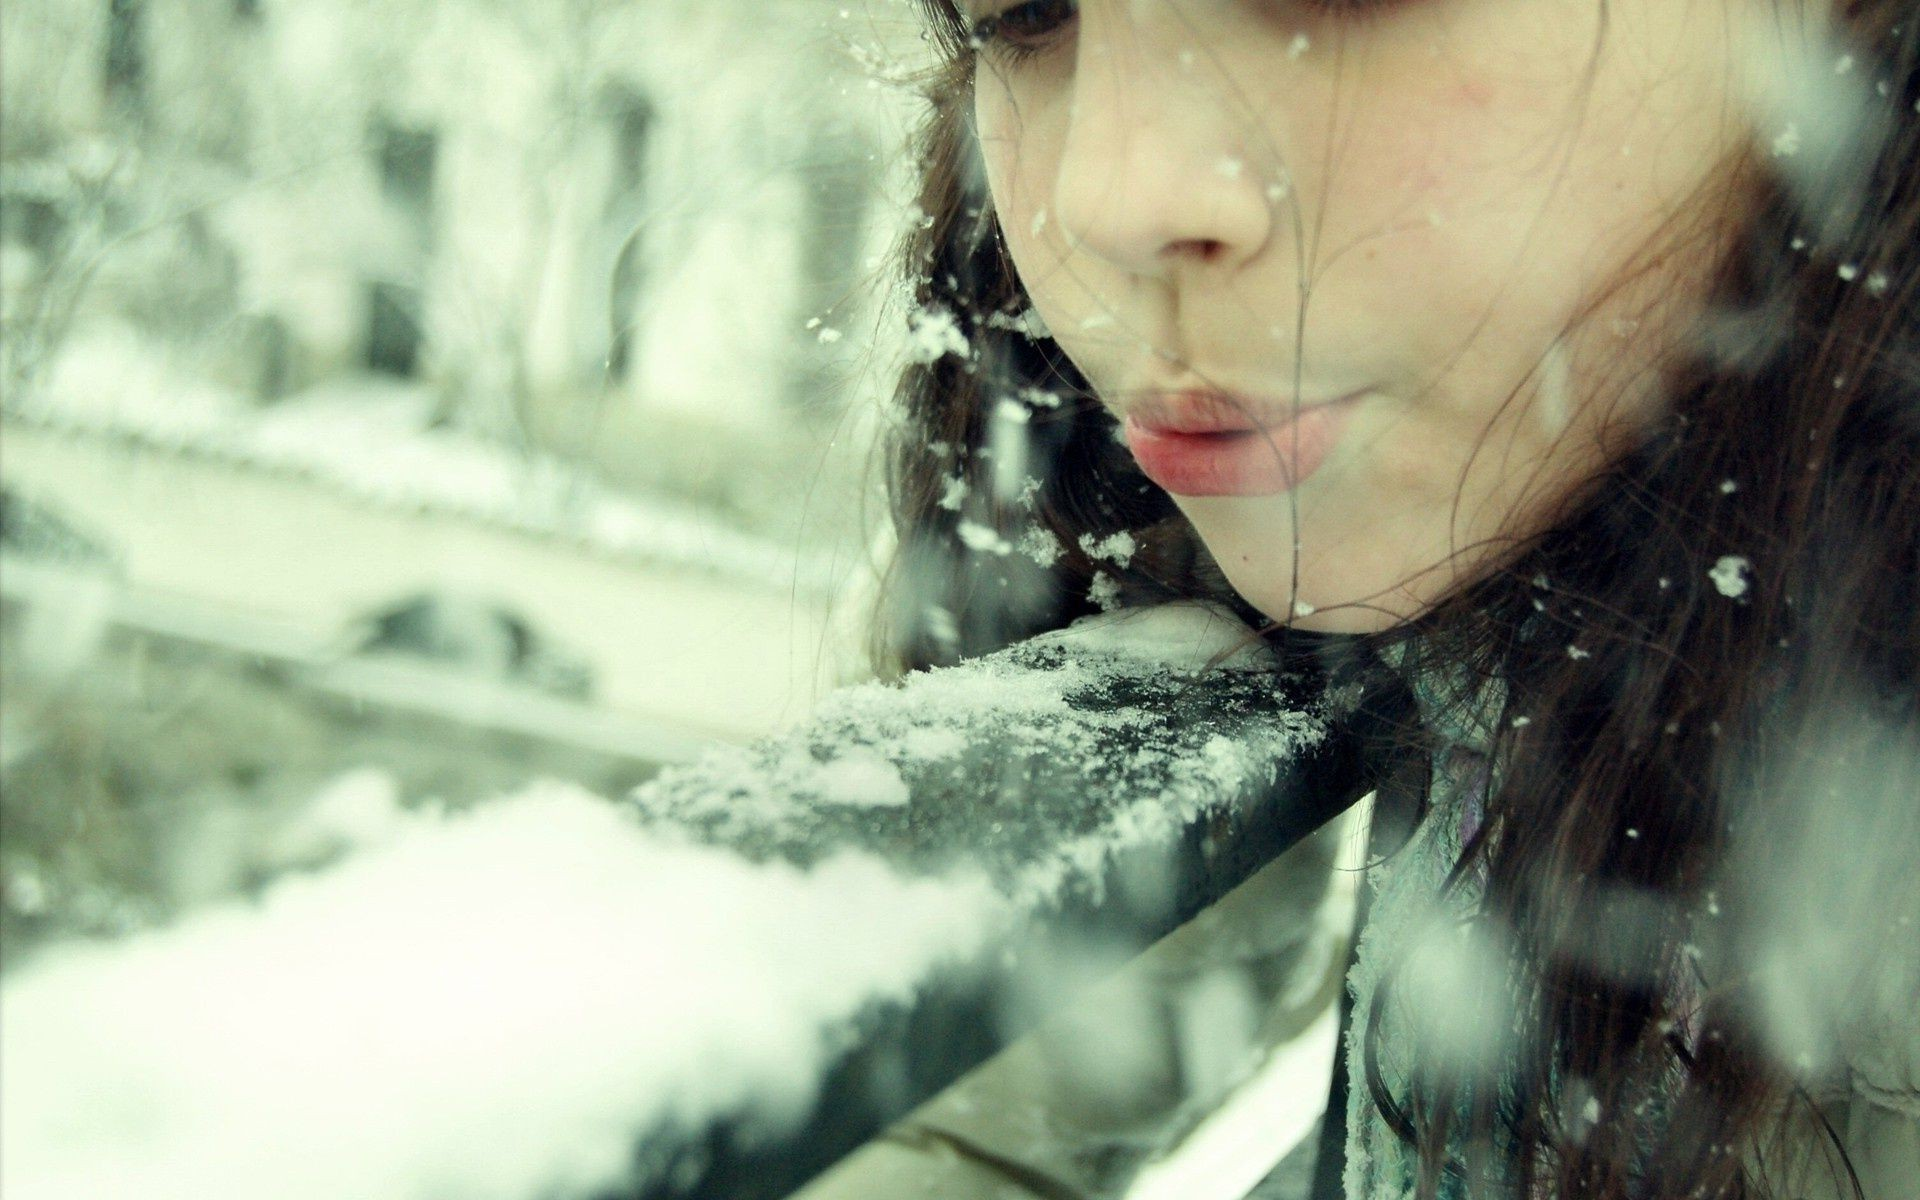 personal photo girl portrait woman blur one beautiful outdoors model fashion winter adult face light water nature cold rain